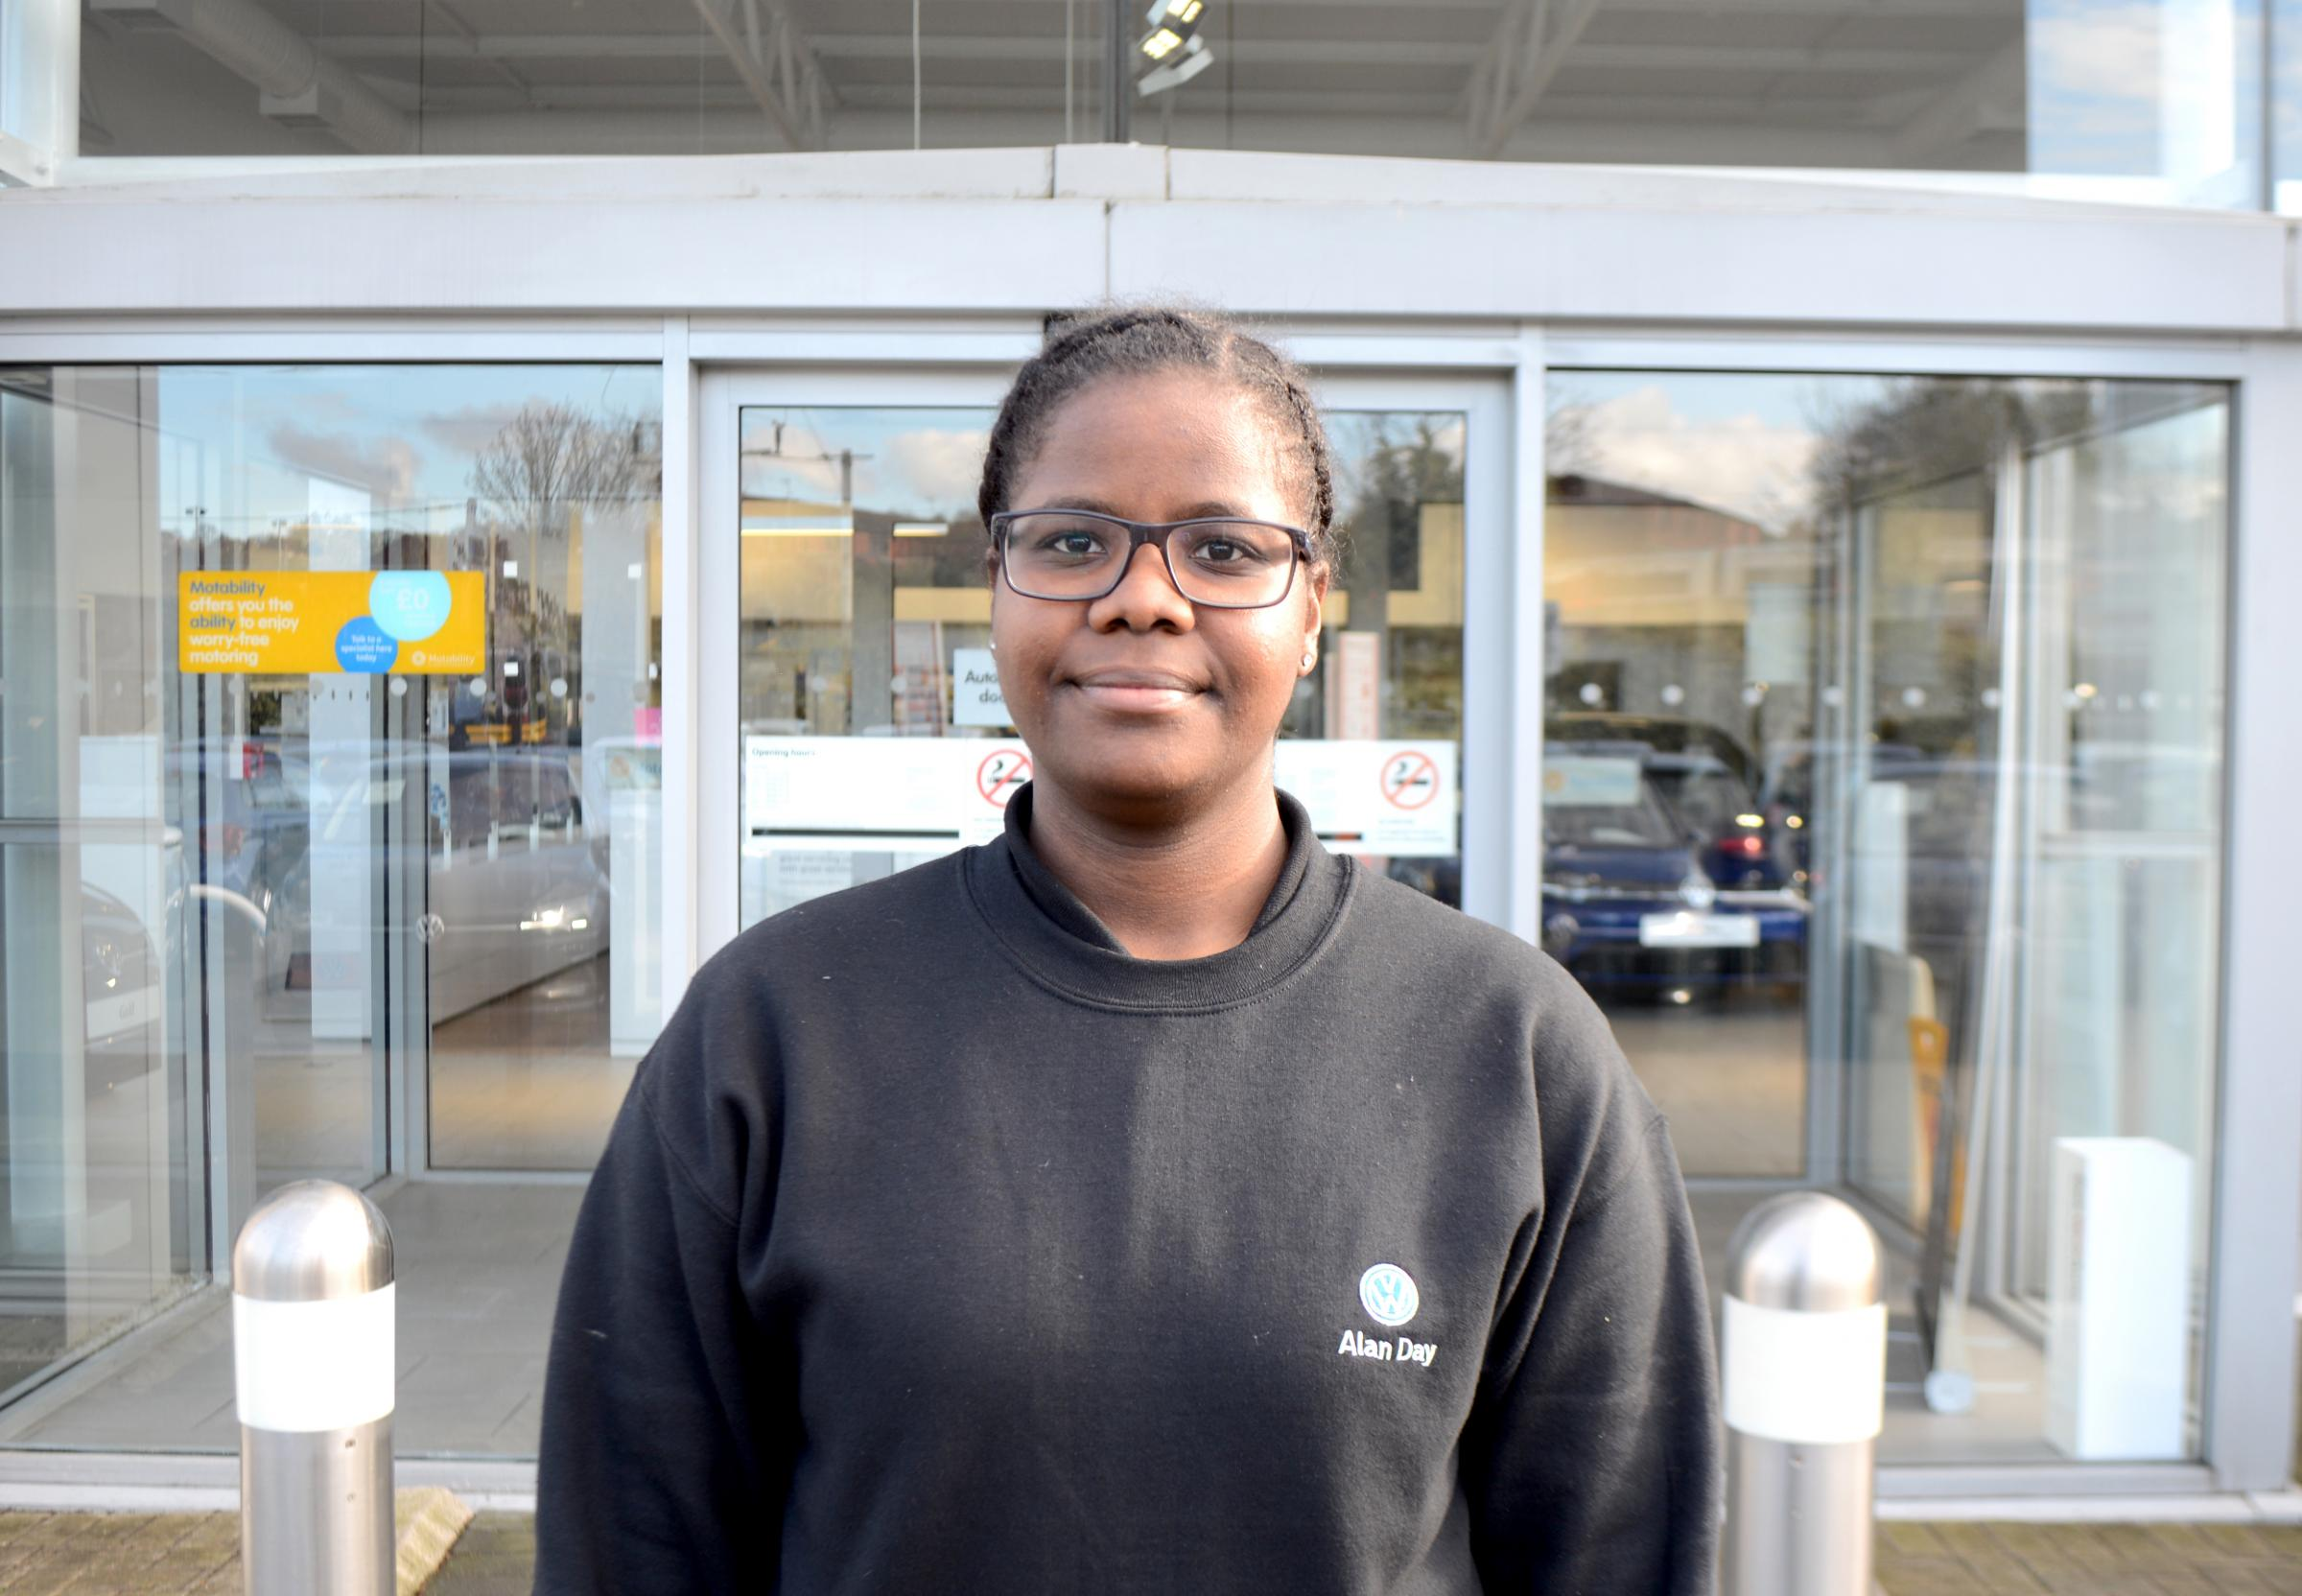 Britney Fingall, who commutes 2 hours every day from North London to Alan Day VW's showroom in Hampstead